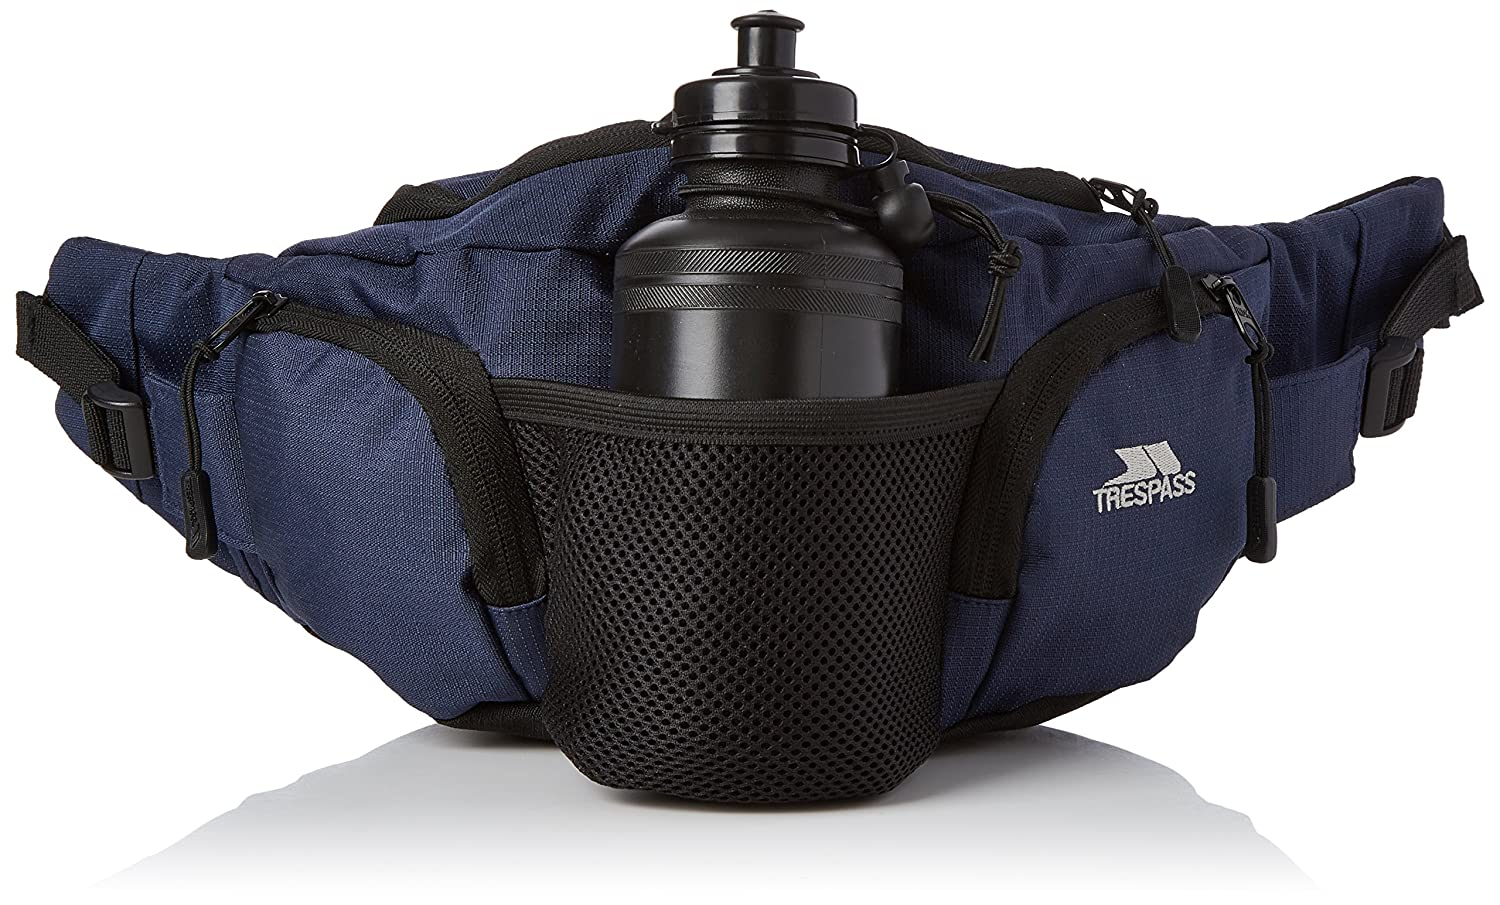 Trespass Vasp, Navy Blue, Adjustable 5L Bumbag/Running Belt with Bottle Holders & Bottles, Blue UUACBAF20003_NBLEACH